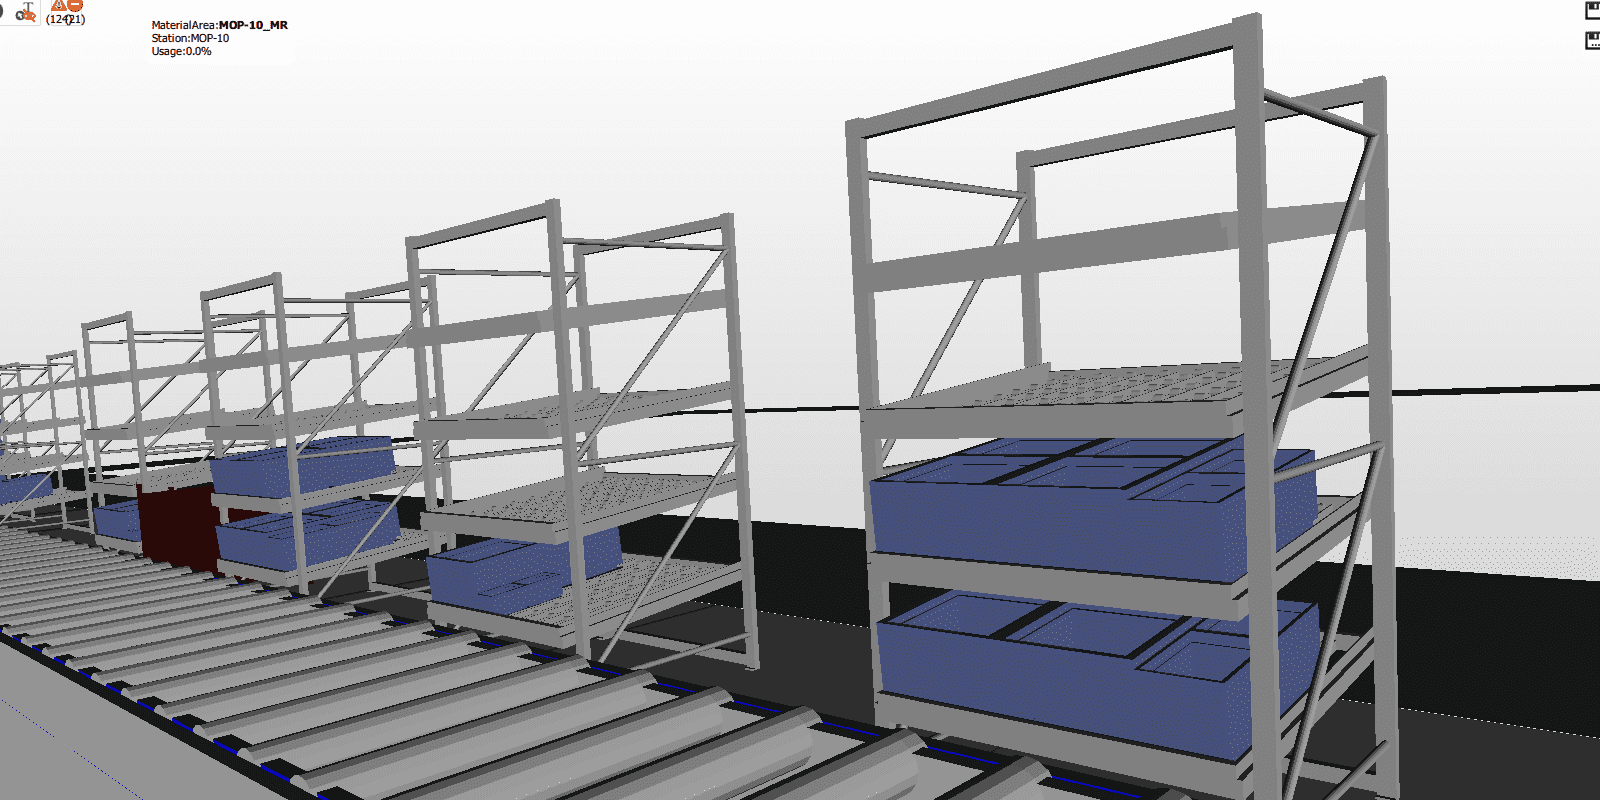 industrial shelf models in the ipolog software